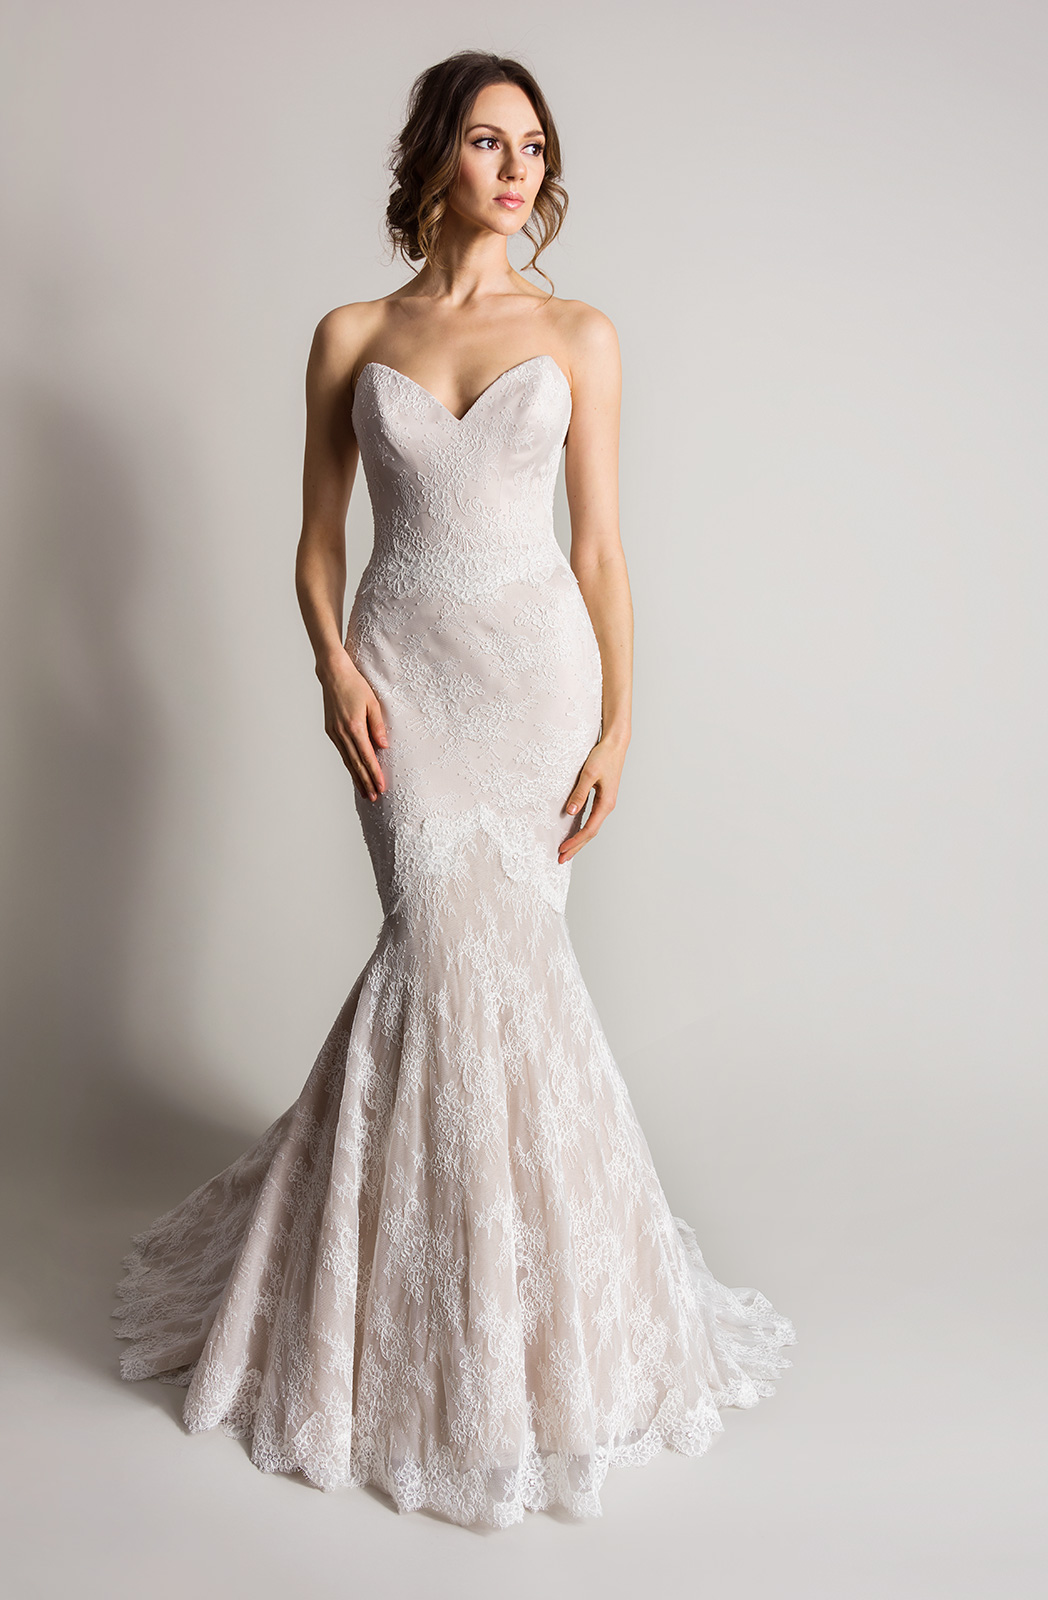 coloured wedding dresses from our favourite bridal designers champagne colored wedding dresses Design by a